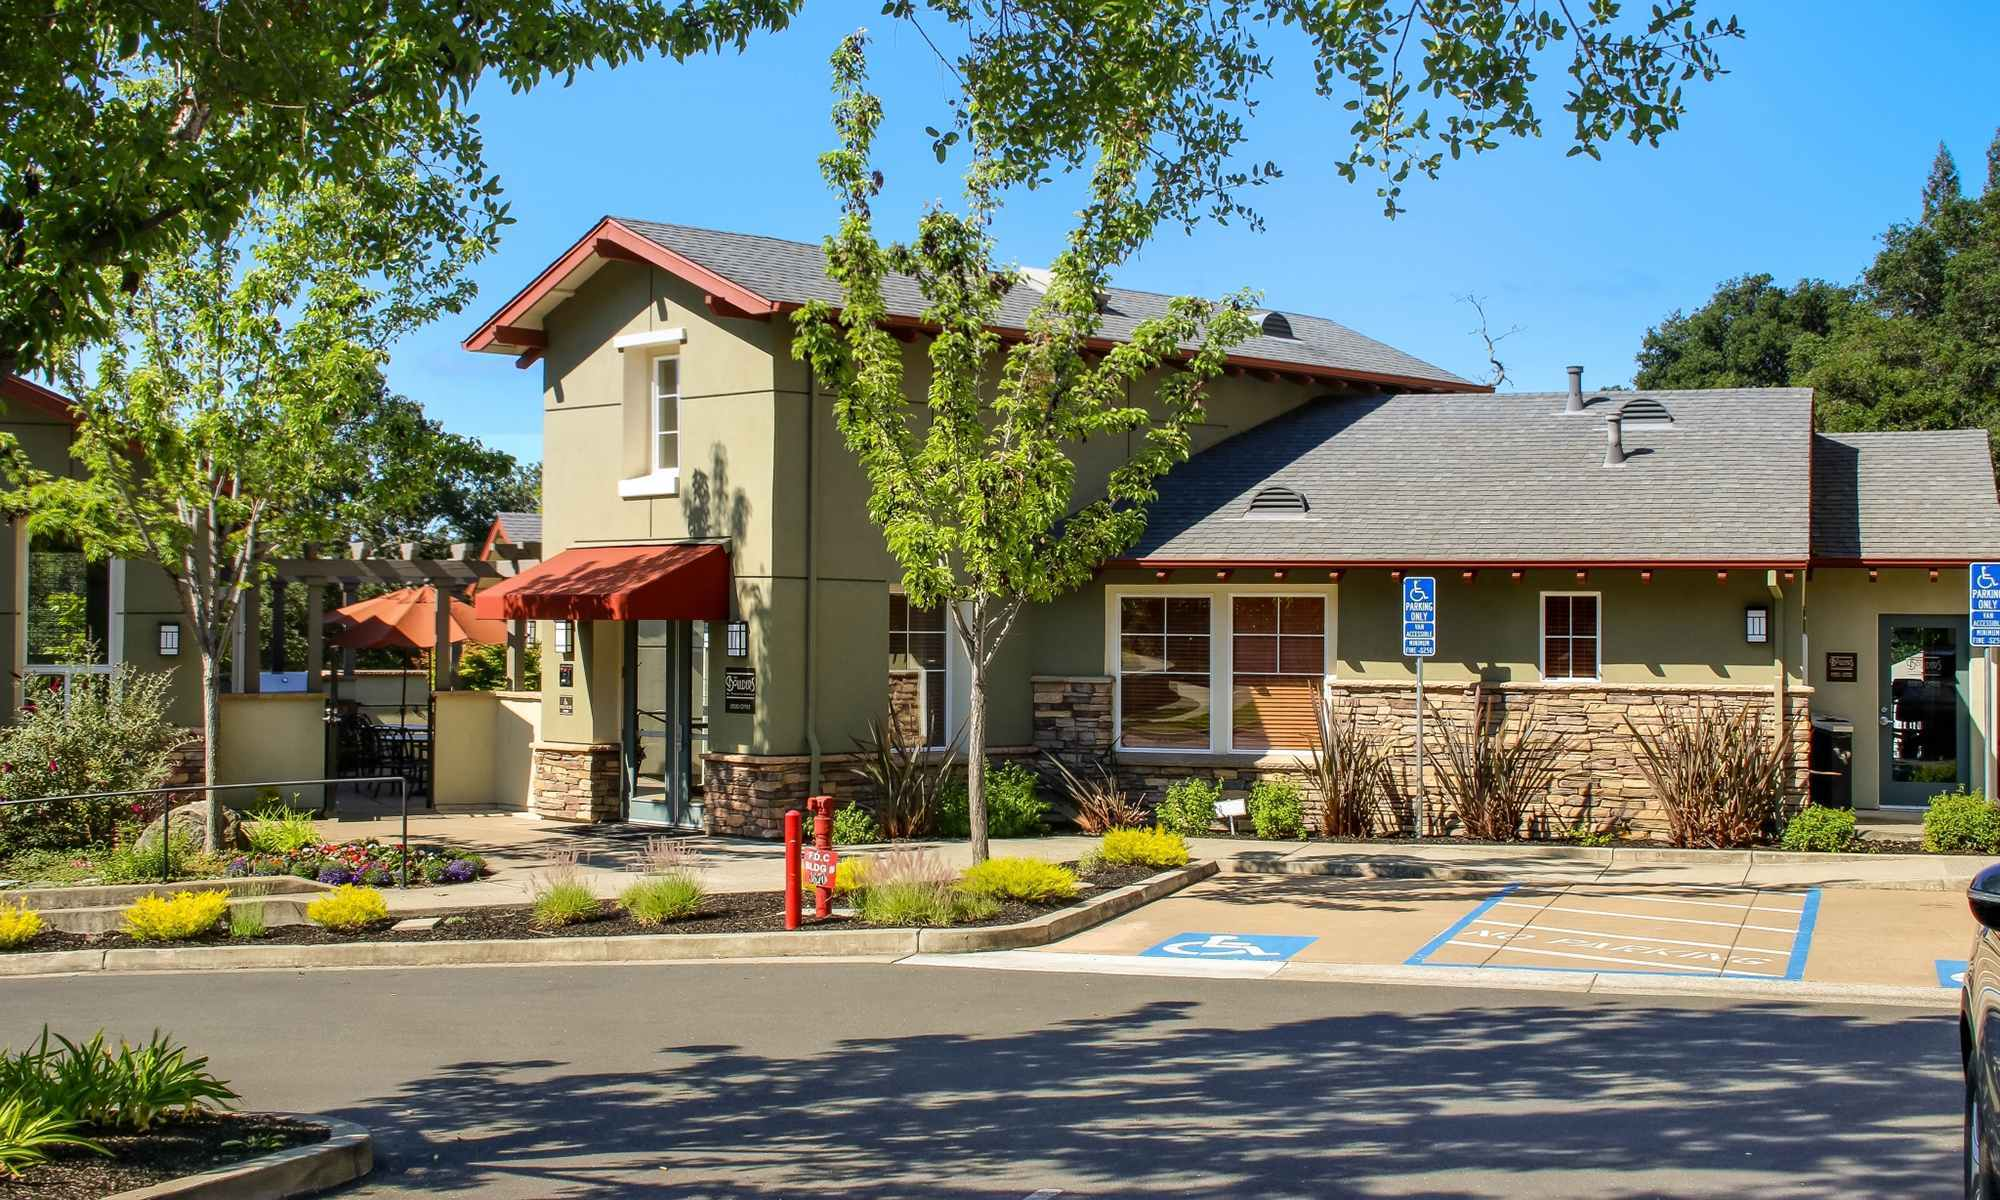 Clean Exterior Building at the Apartments for rent in Santa Rosa